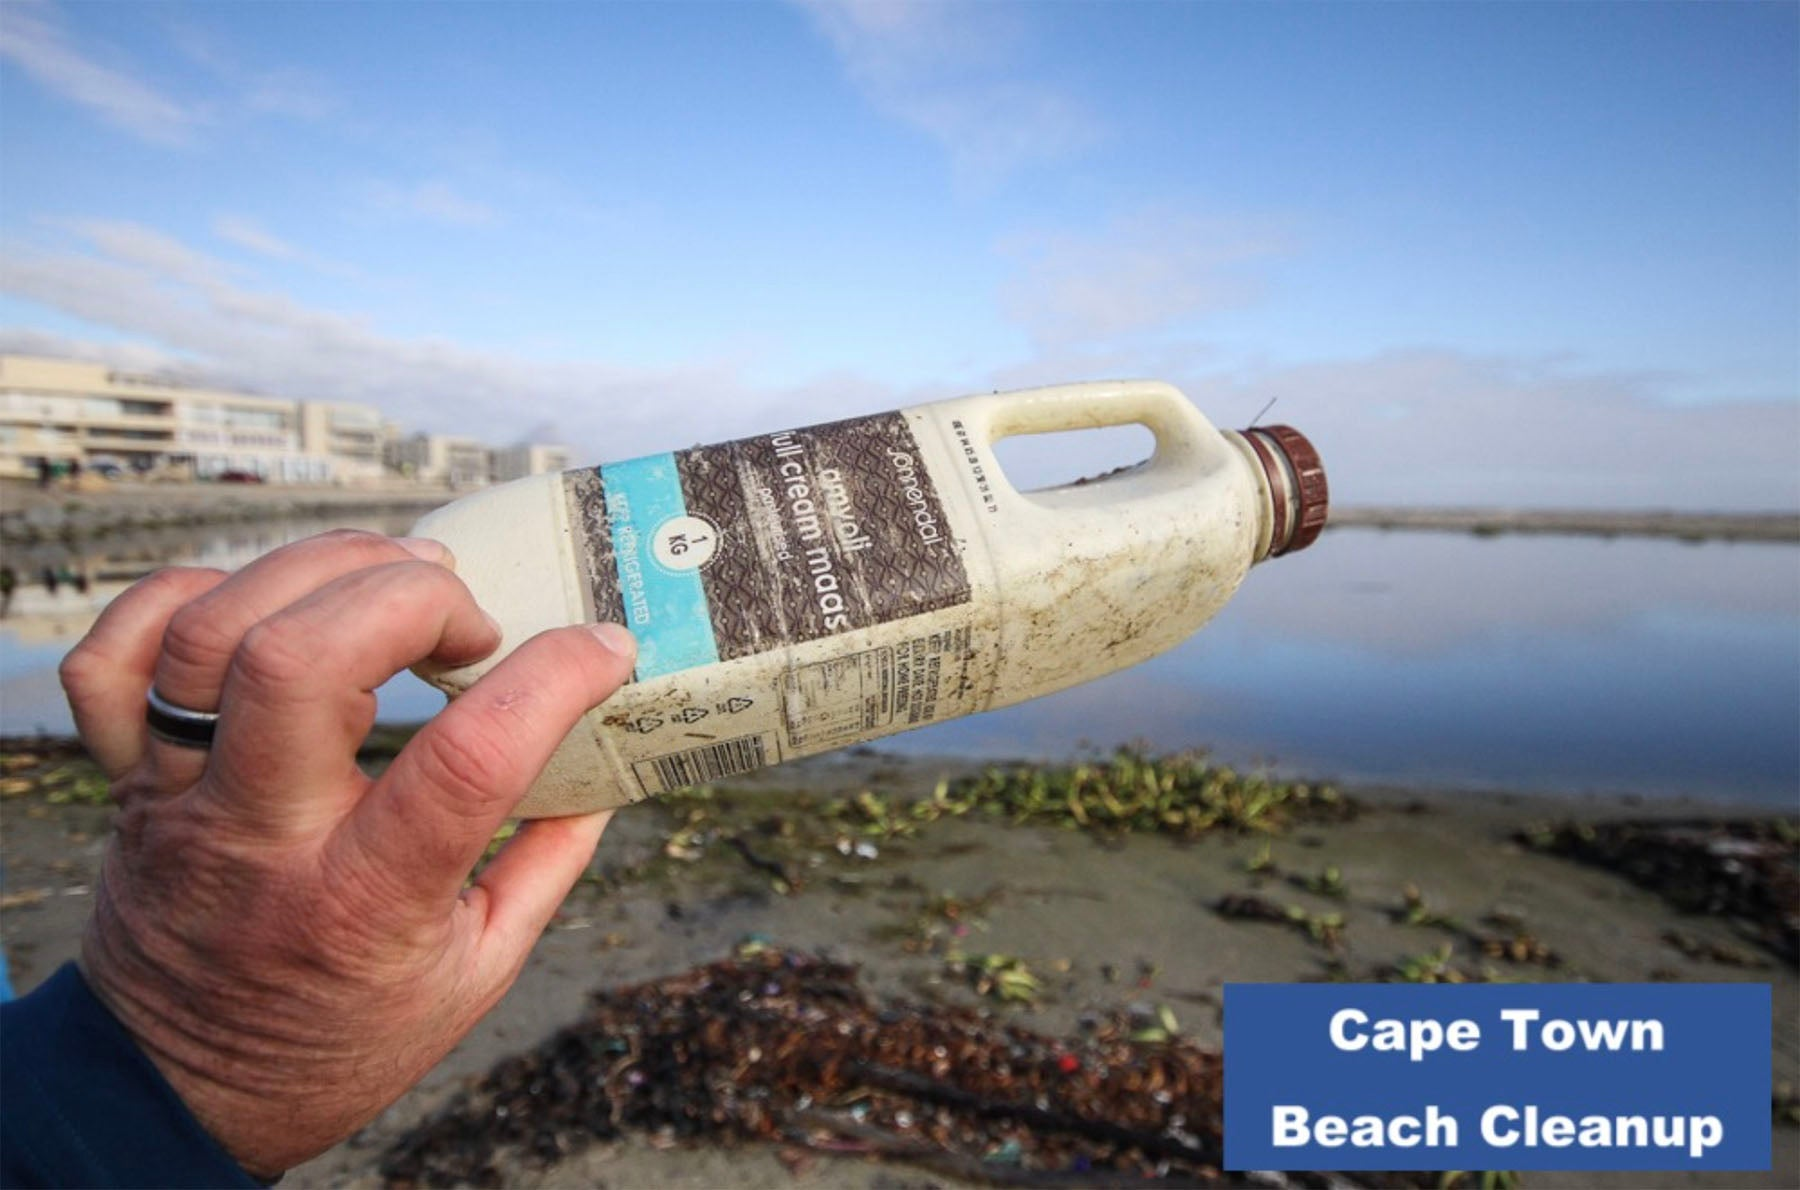 Photo of beach clean up in South Africa. The Cape Island brand supports this cause. Cape Island luxury candles, soap products and home fragrances are available at Sarza home goods and furniture store in Rye New York.